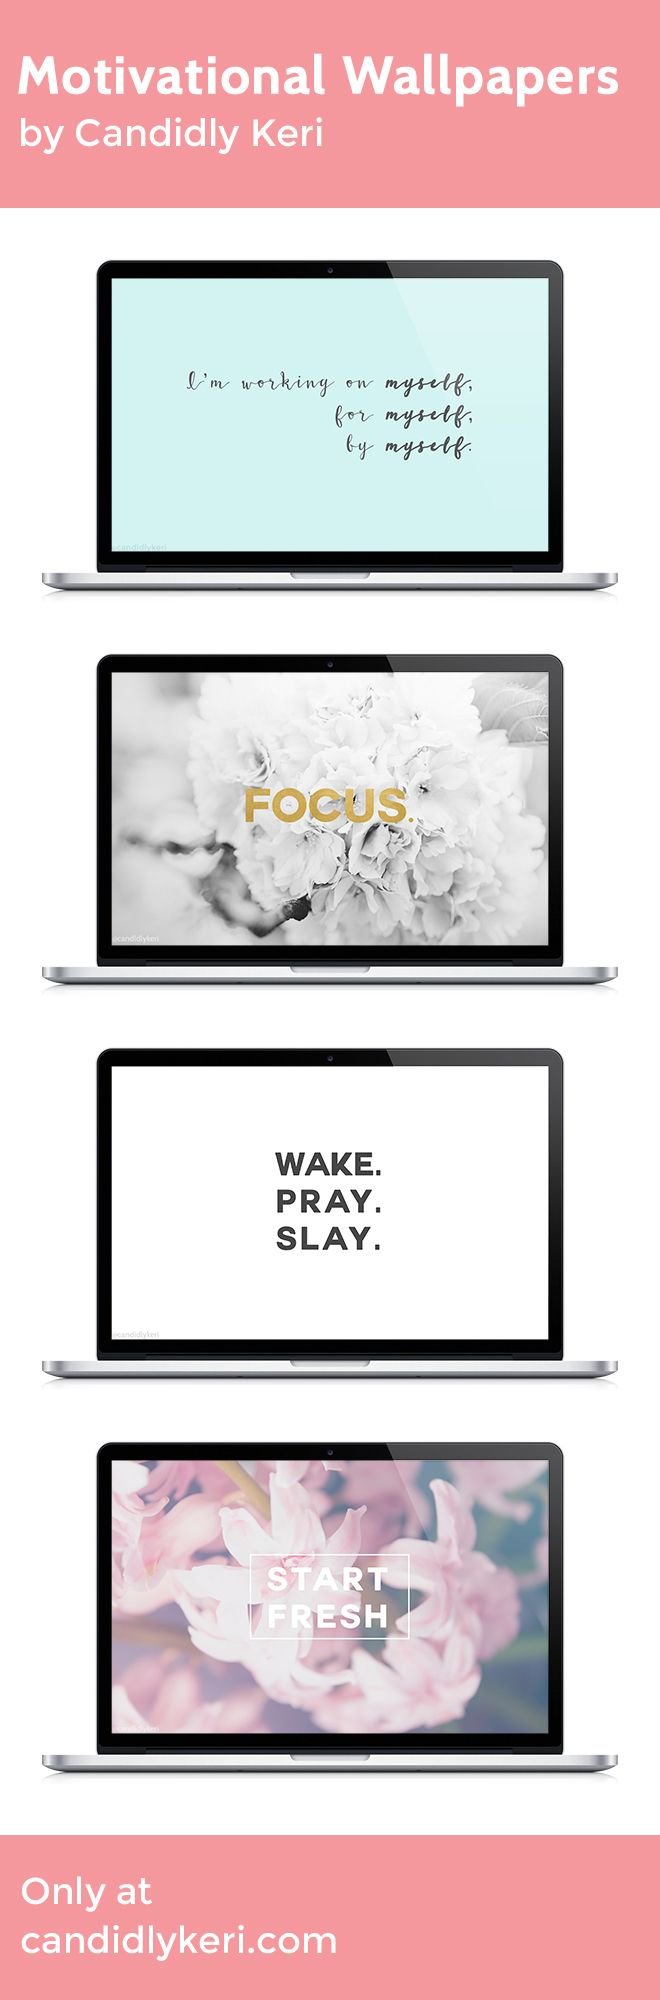 Wallpaper download blog - Motivational Quotes Wallpaper You Can Download For Free On The Blog For Any Device